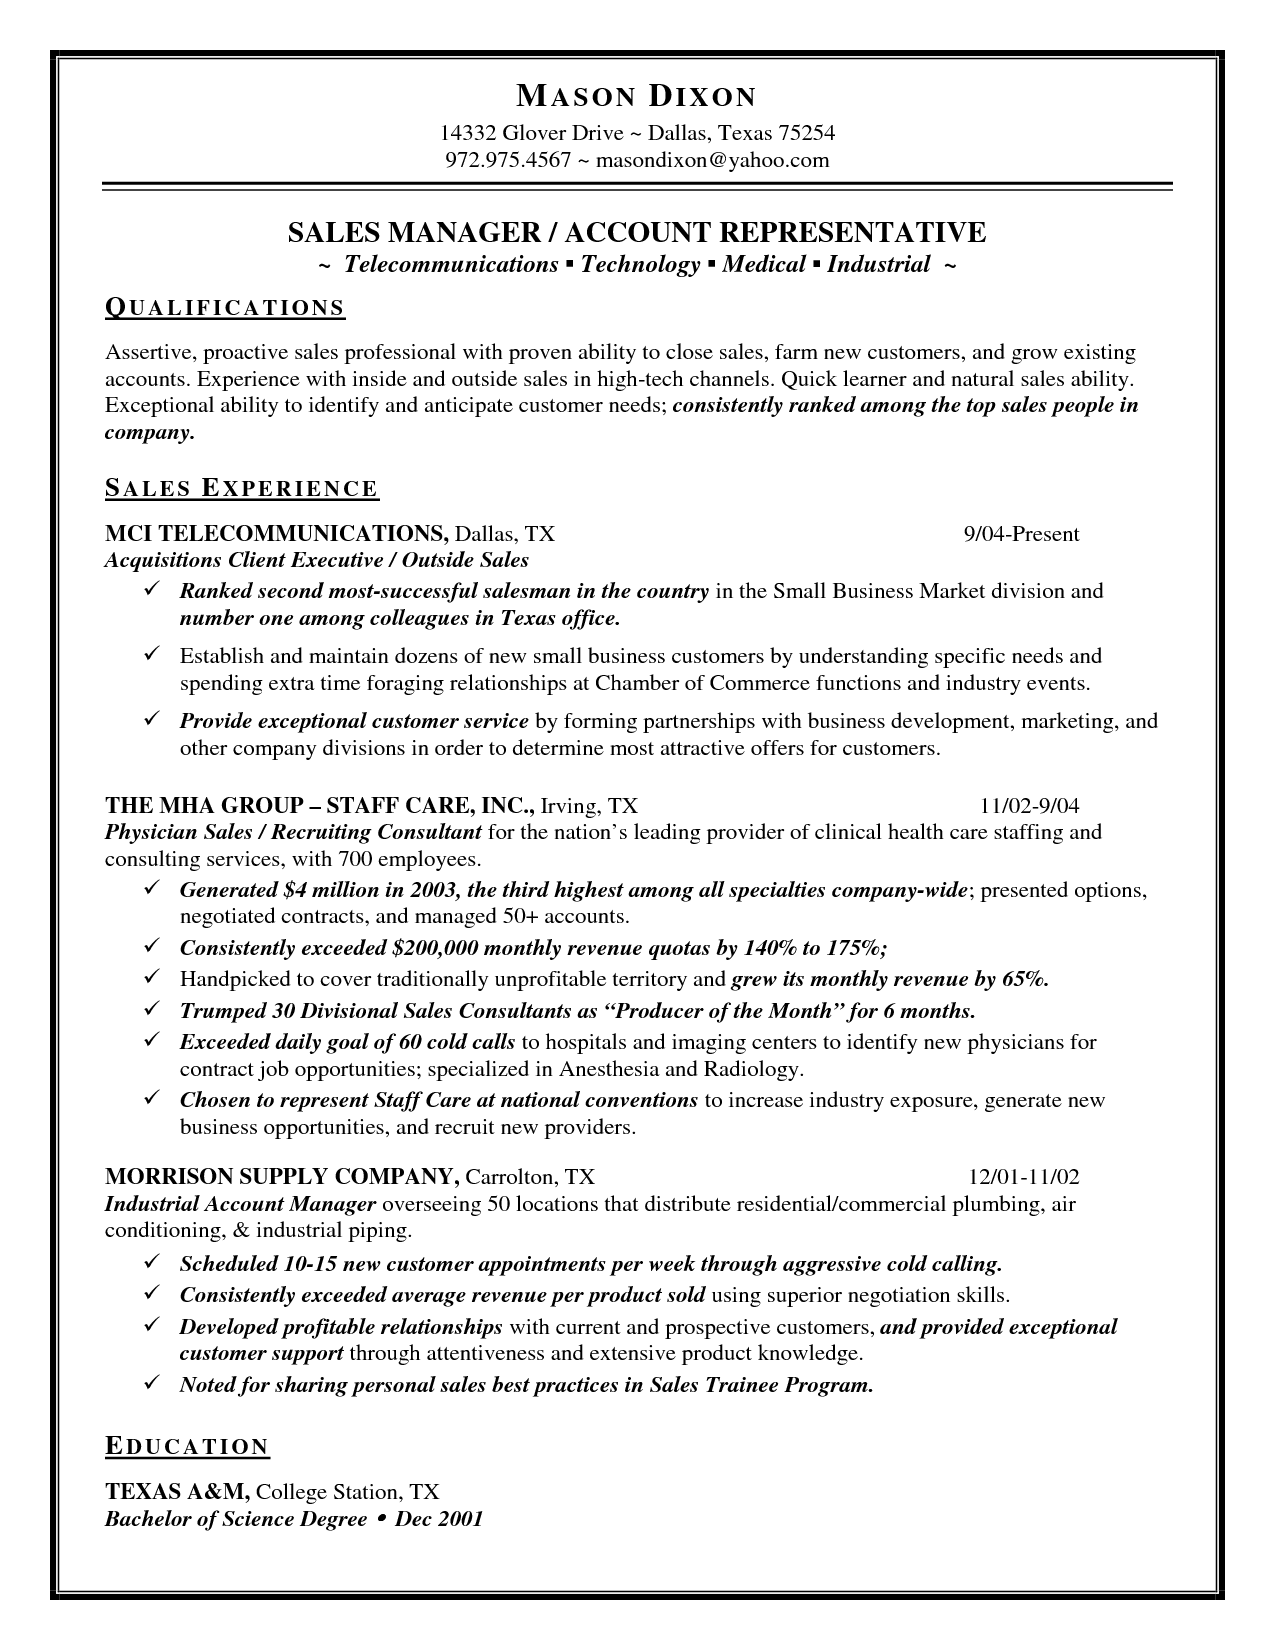 fast learner cover letter